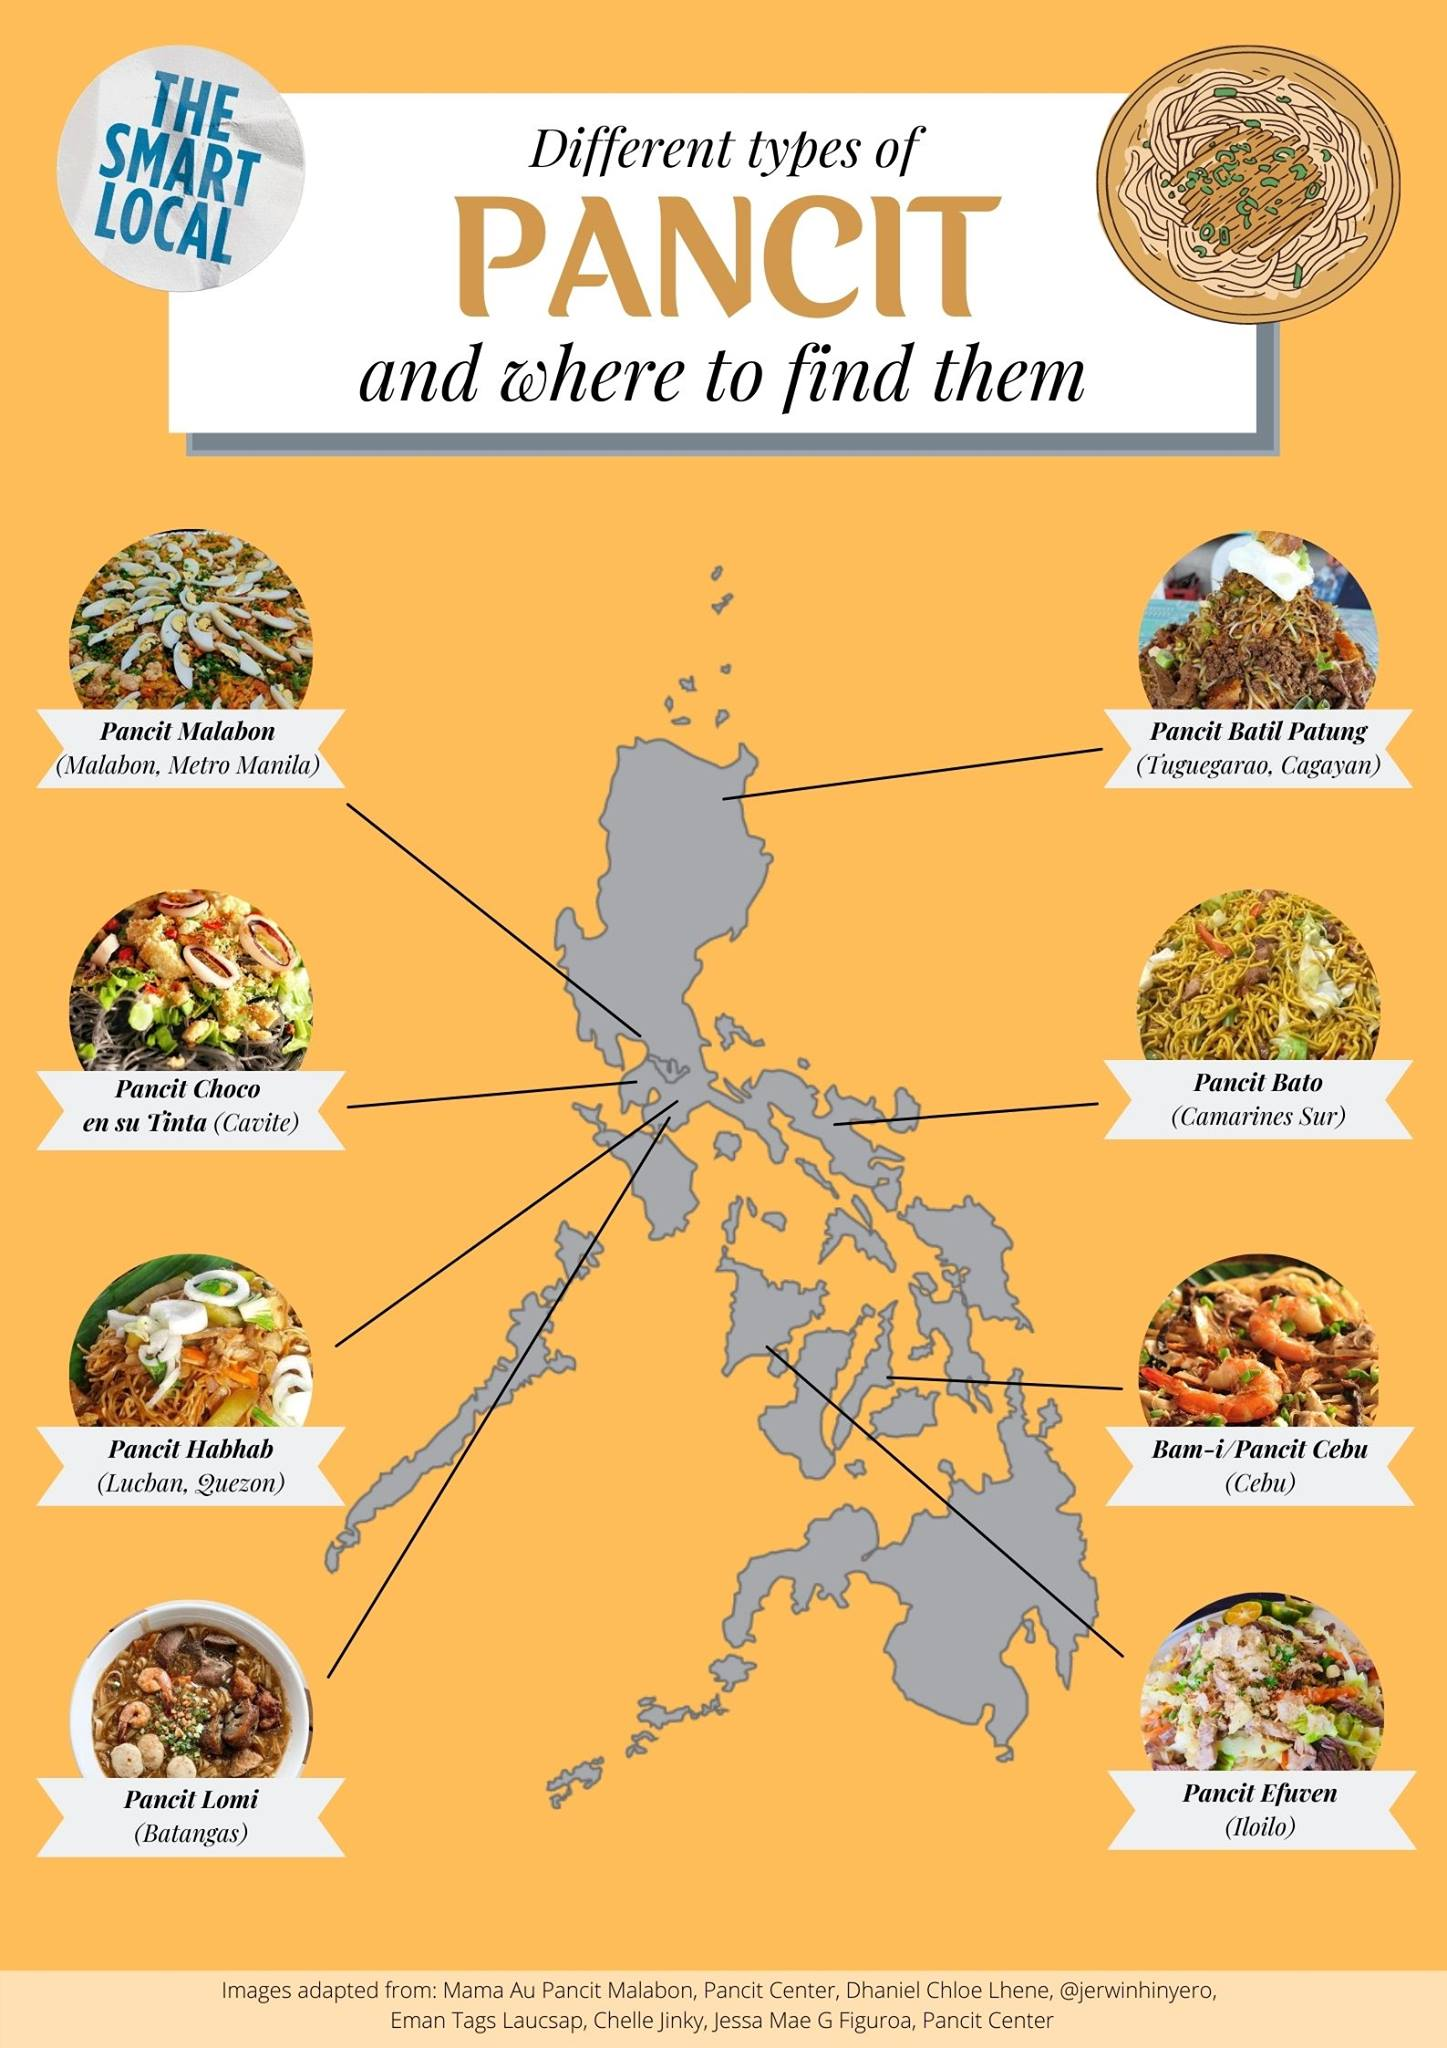 pancit types in the philippines